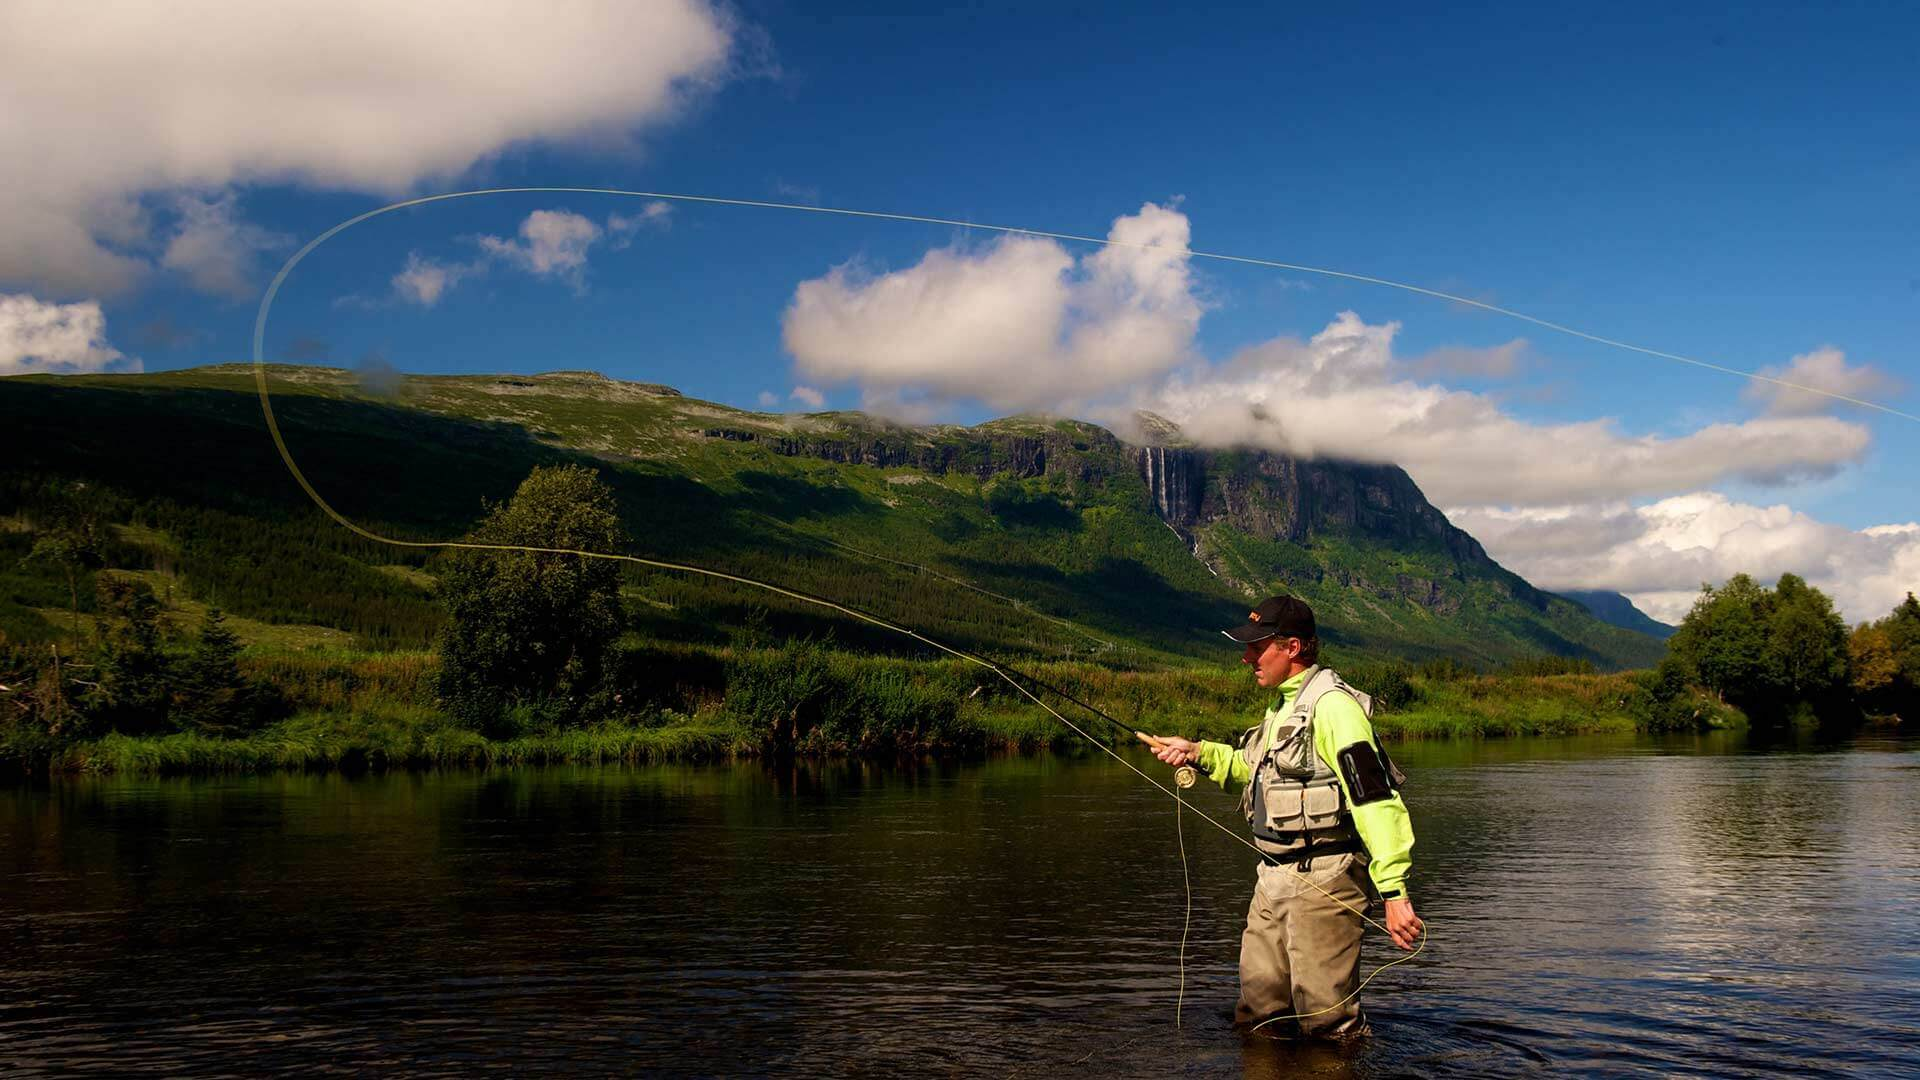 Fly fishing in norway possible near herangtunet for Rent fishing gear near me